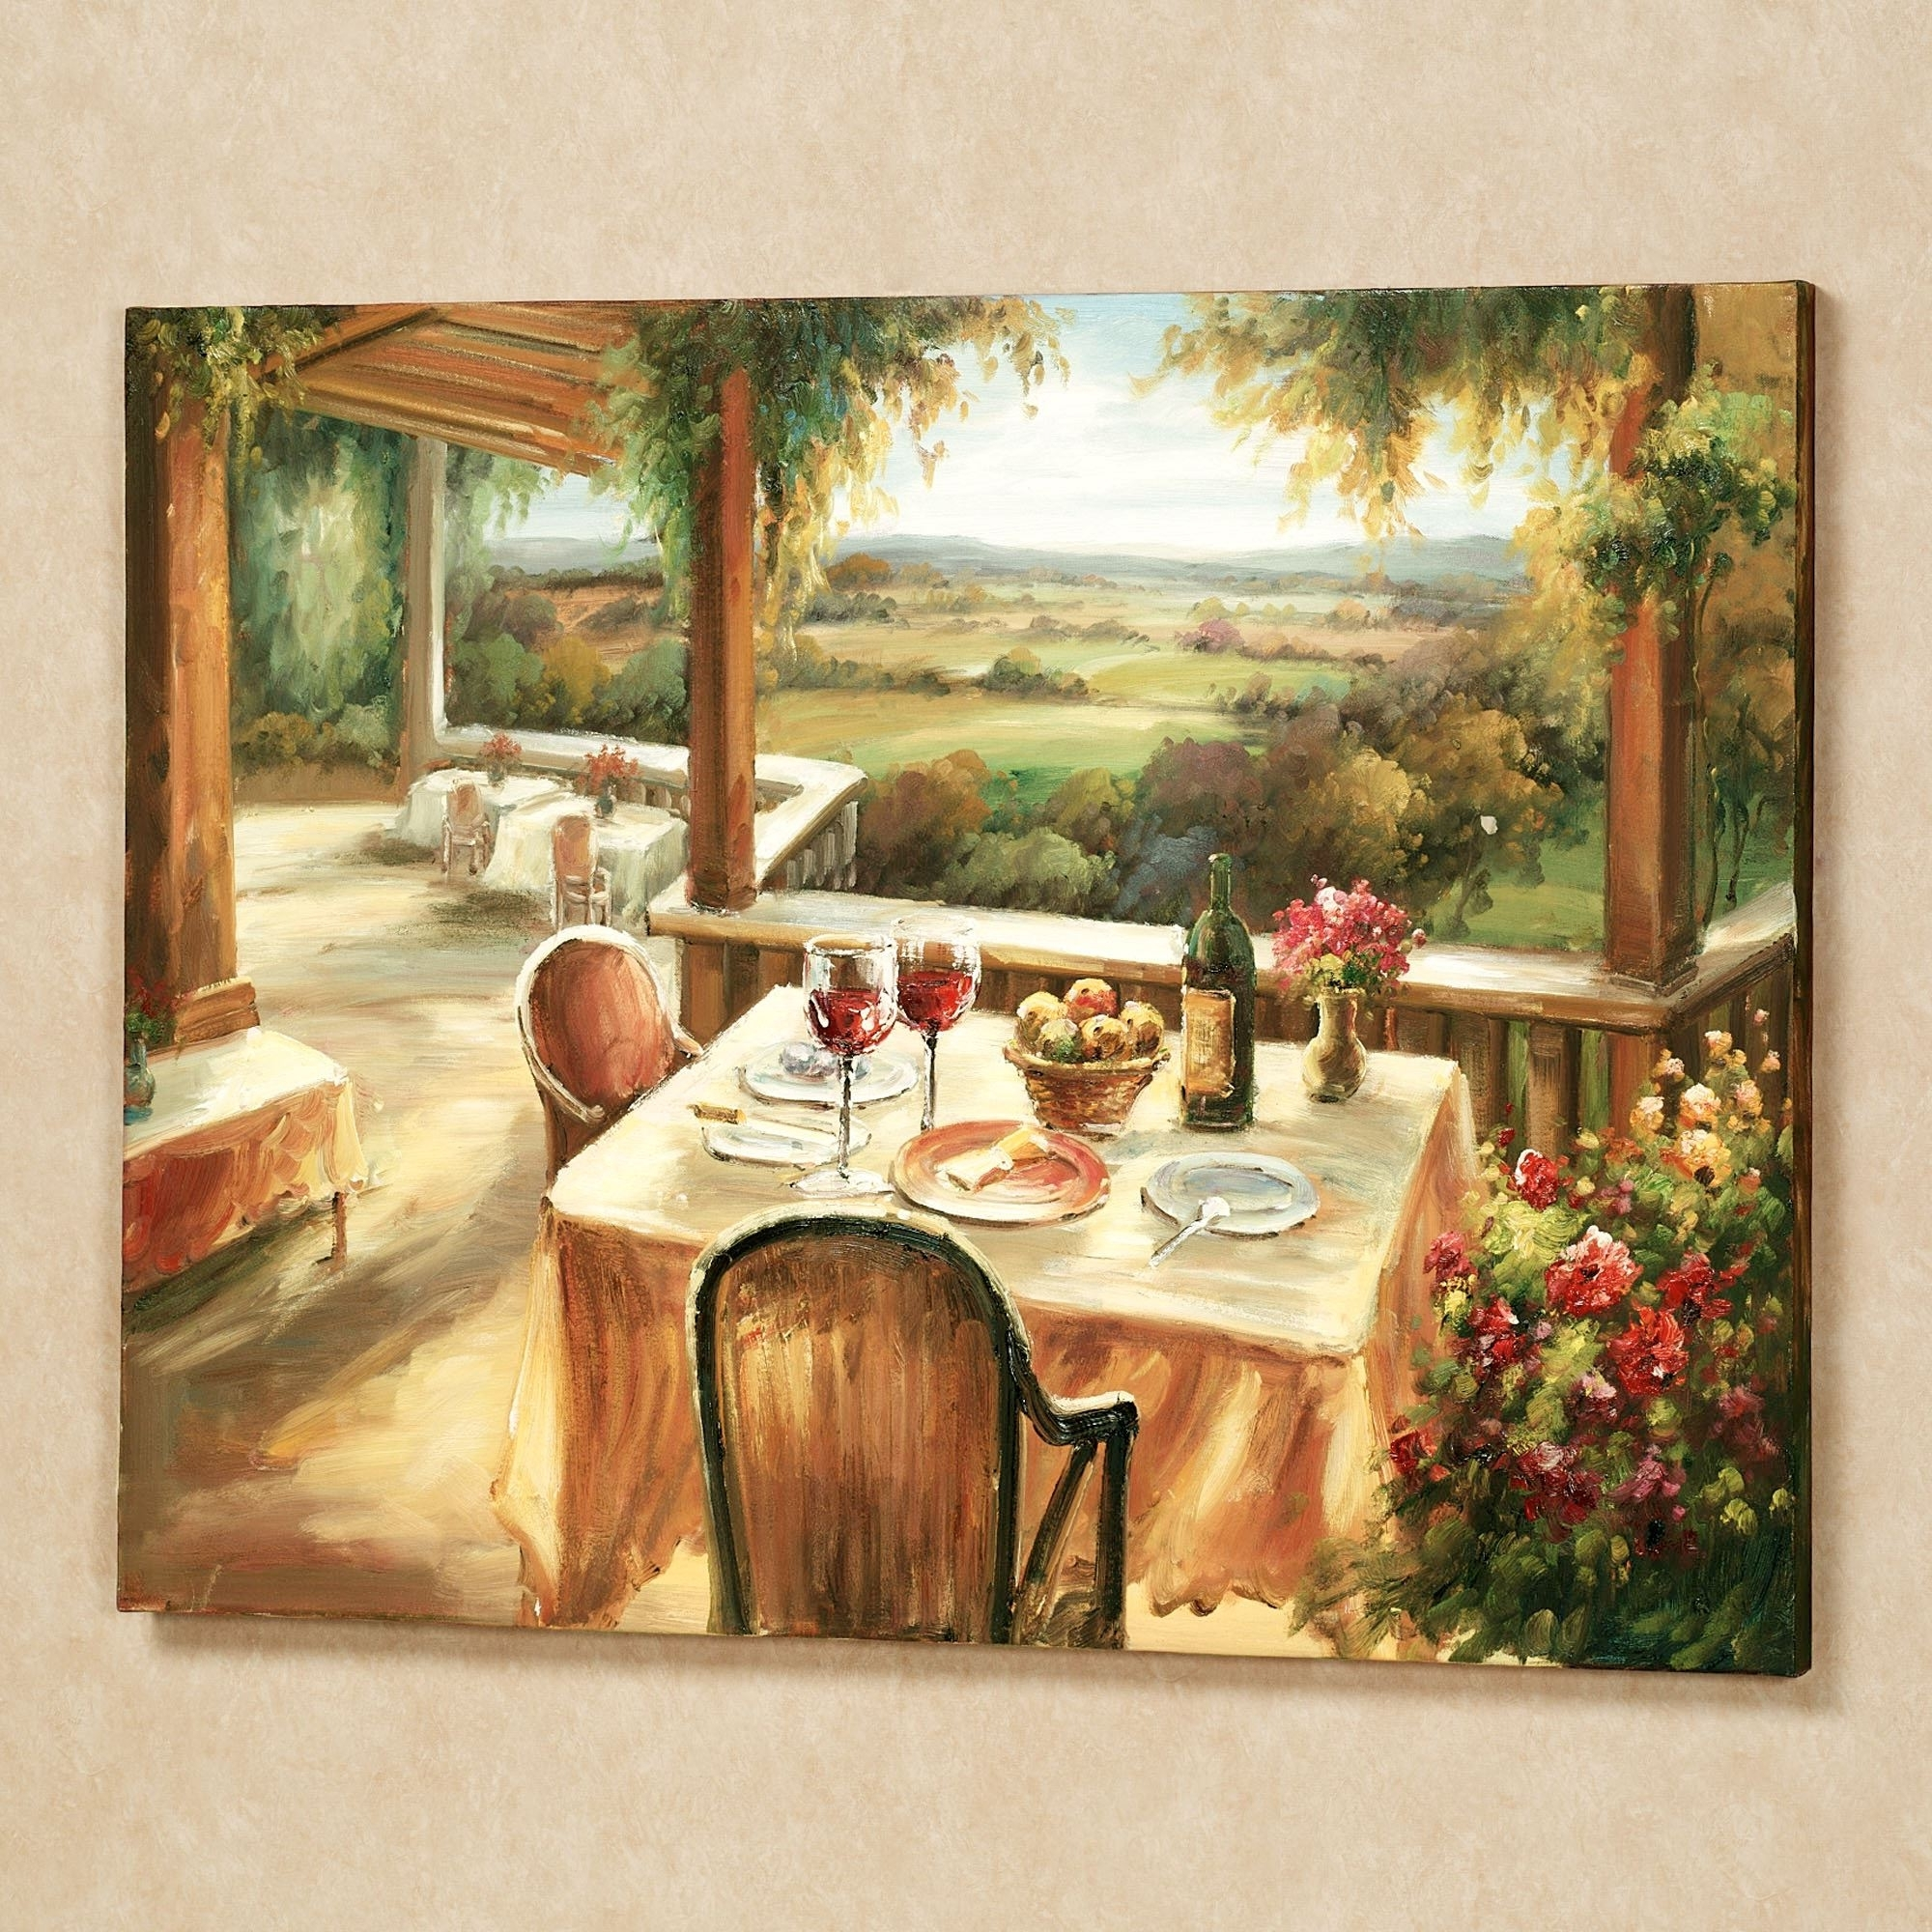 Preferred Wine And Dine Canvas Wall Art Intended For Italian Wine Wall Art (View 7 of 15)